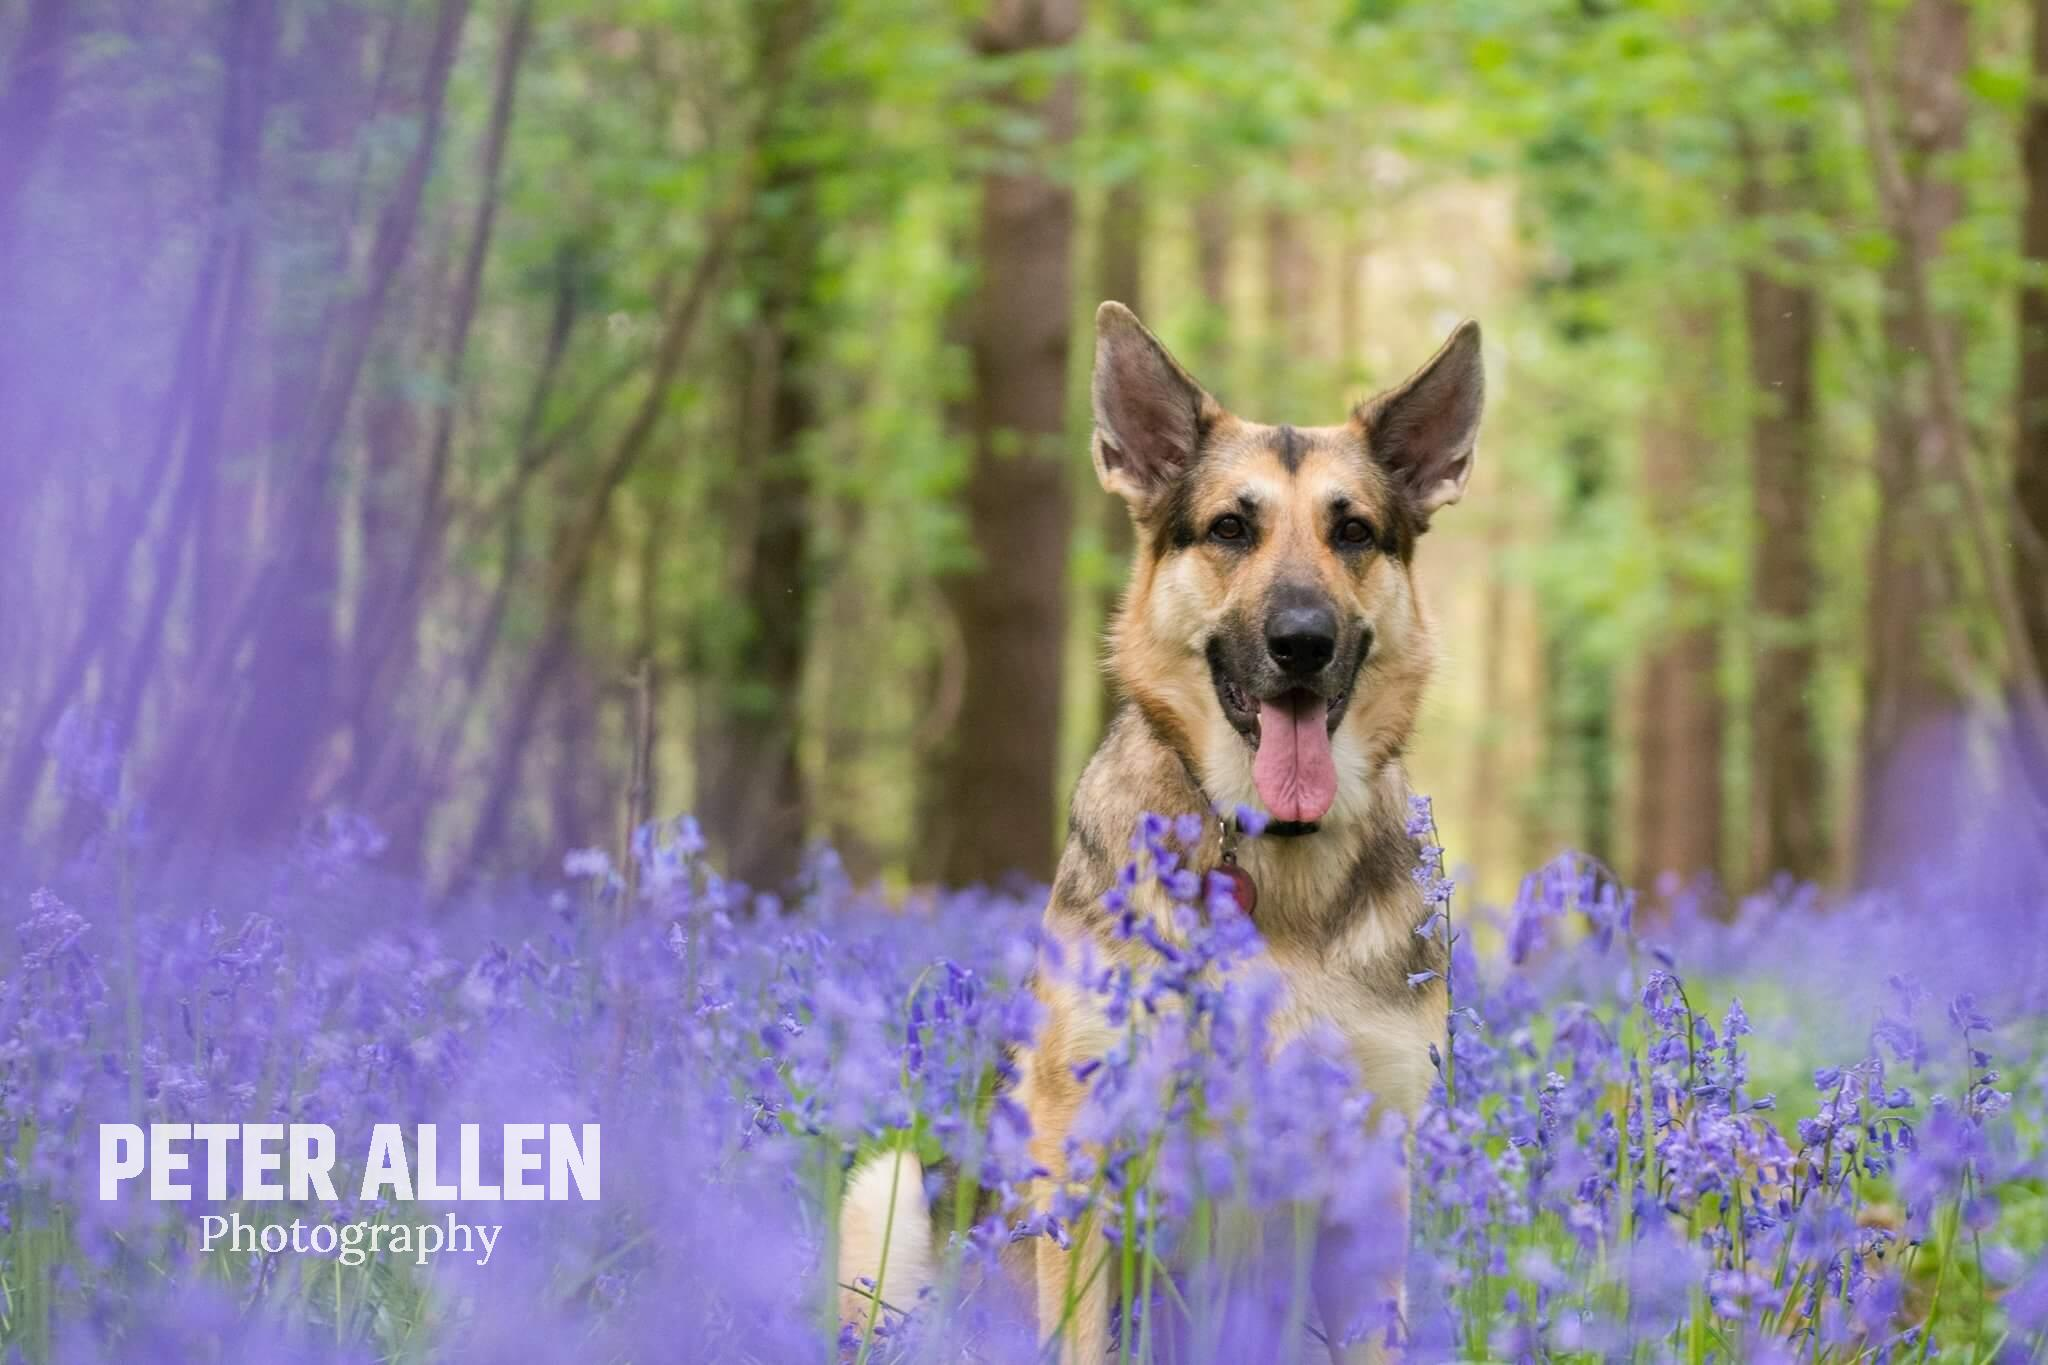 German Shepherd sitting in a bed of bluebells